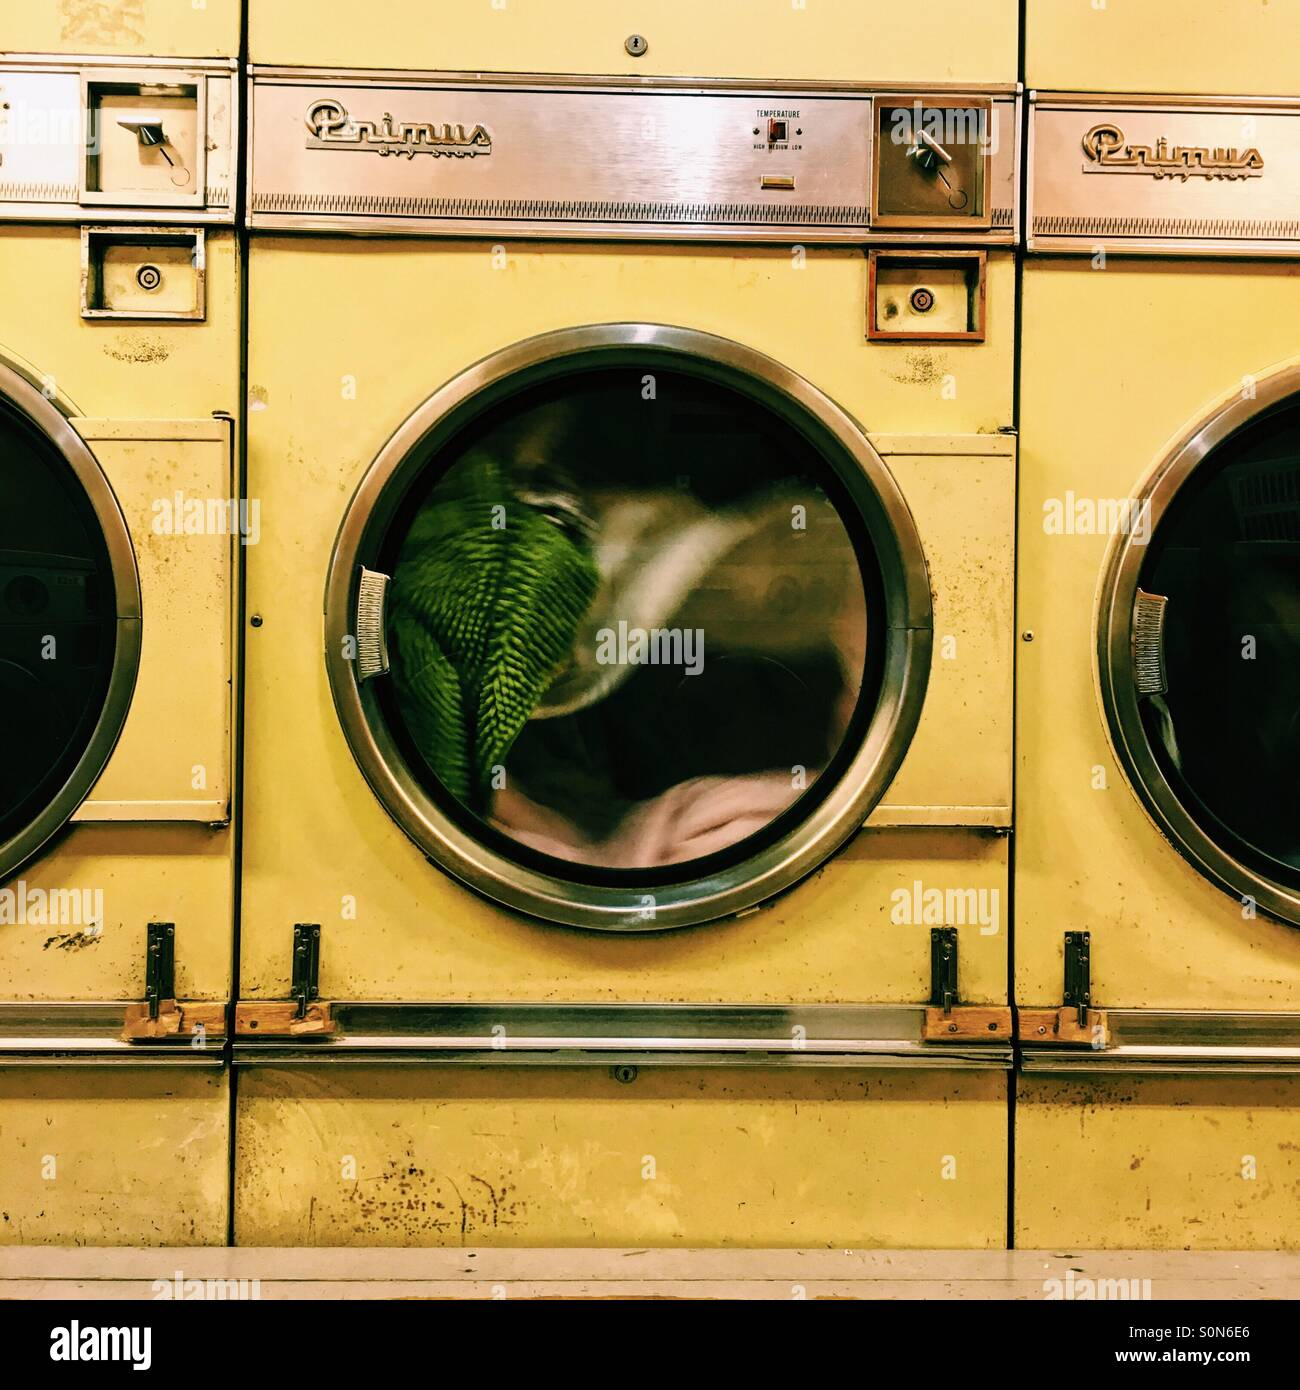 Drying your stuff in a laundrette - Stock Image